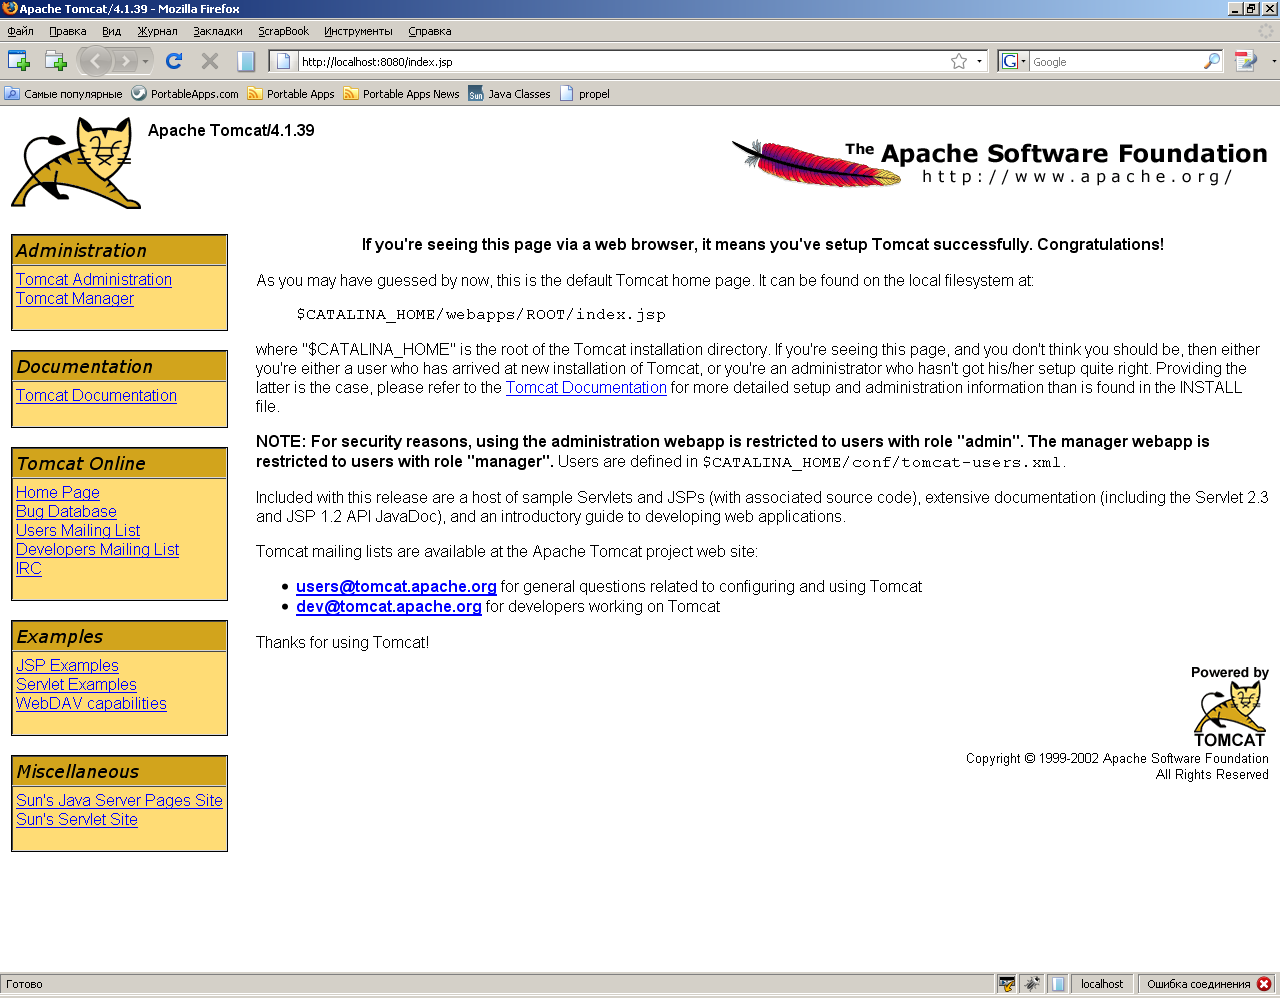 Apache TomCat Screen